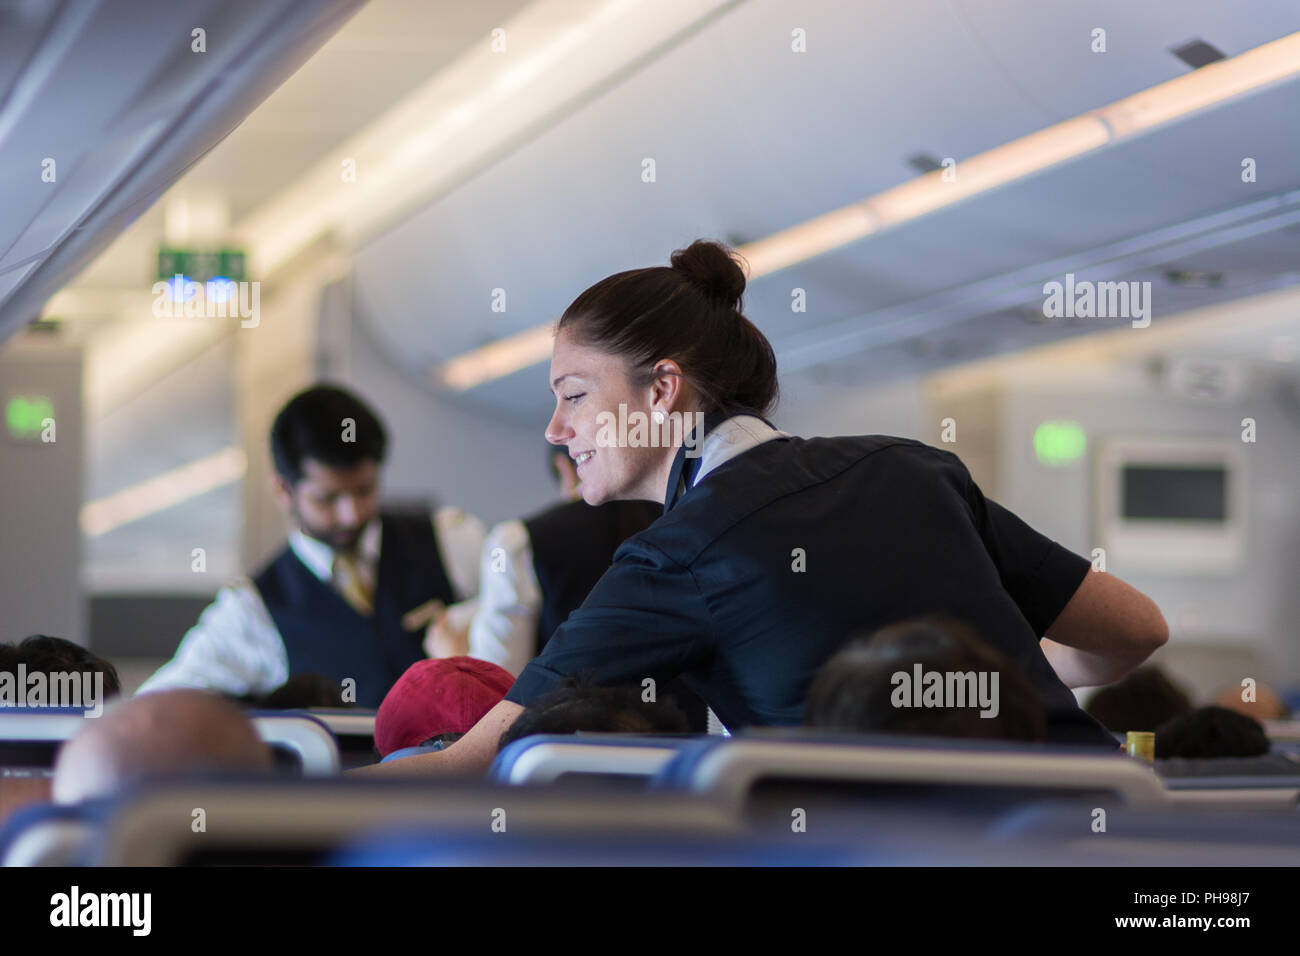 Mumbai, India - July 8, 2018 - Flight attendants speaking with a passenger sitting in the economy class of the route Munich - Mumbai of Lufthansa Airl - Stock Image